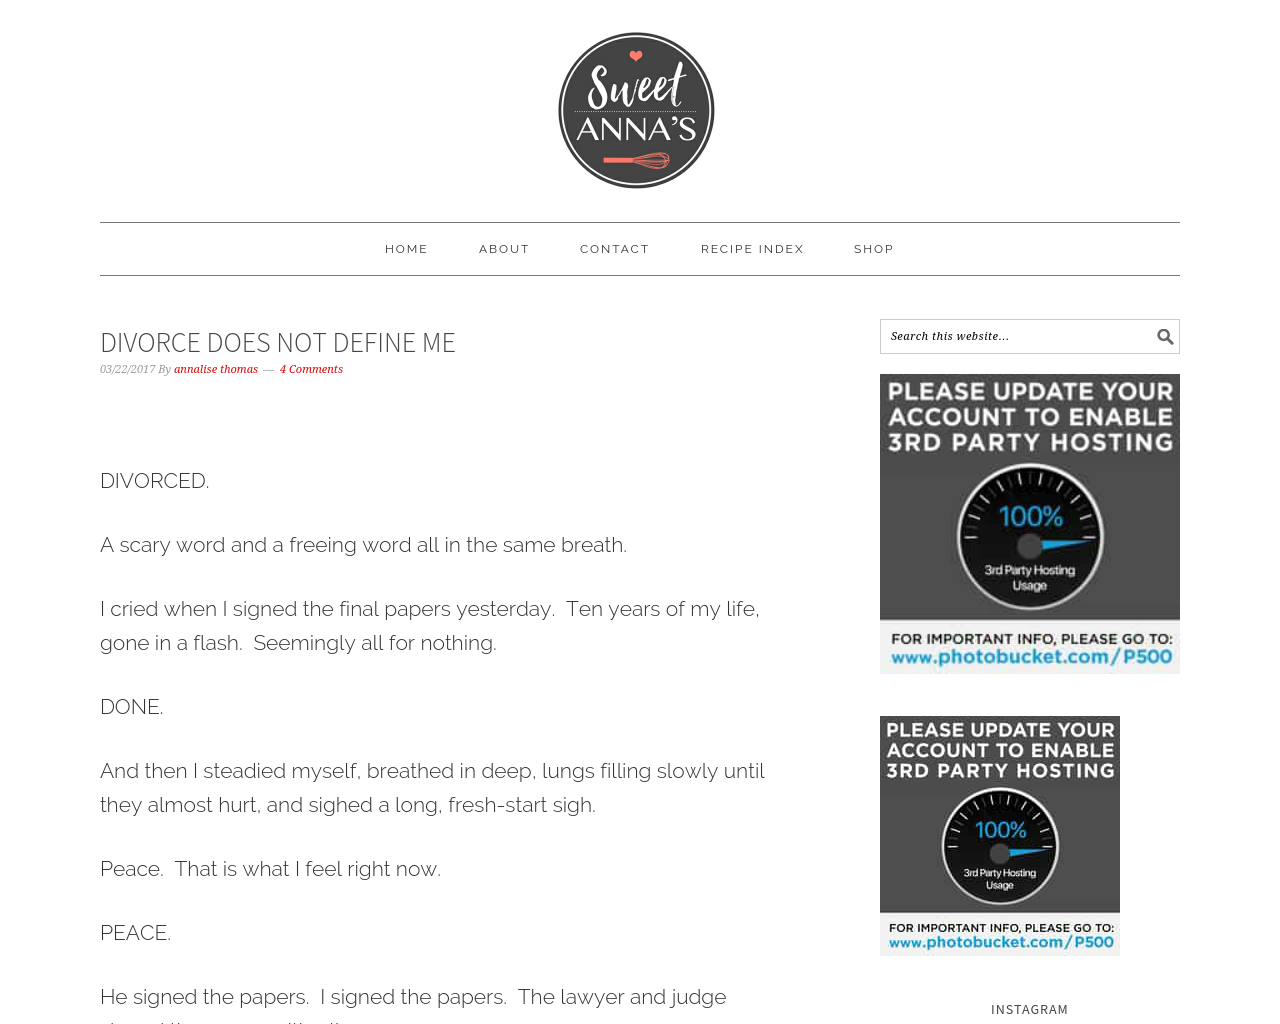 Sweet-Anna's-Advertising-Reviews-Pricing